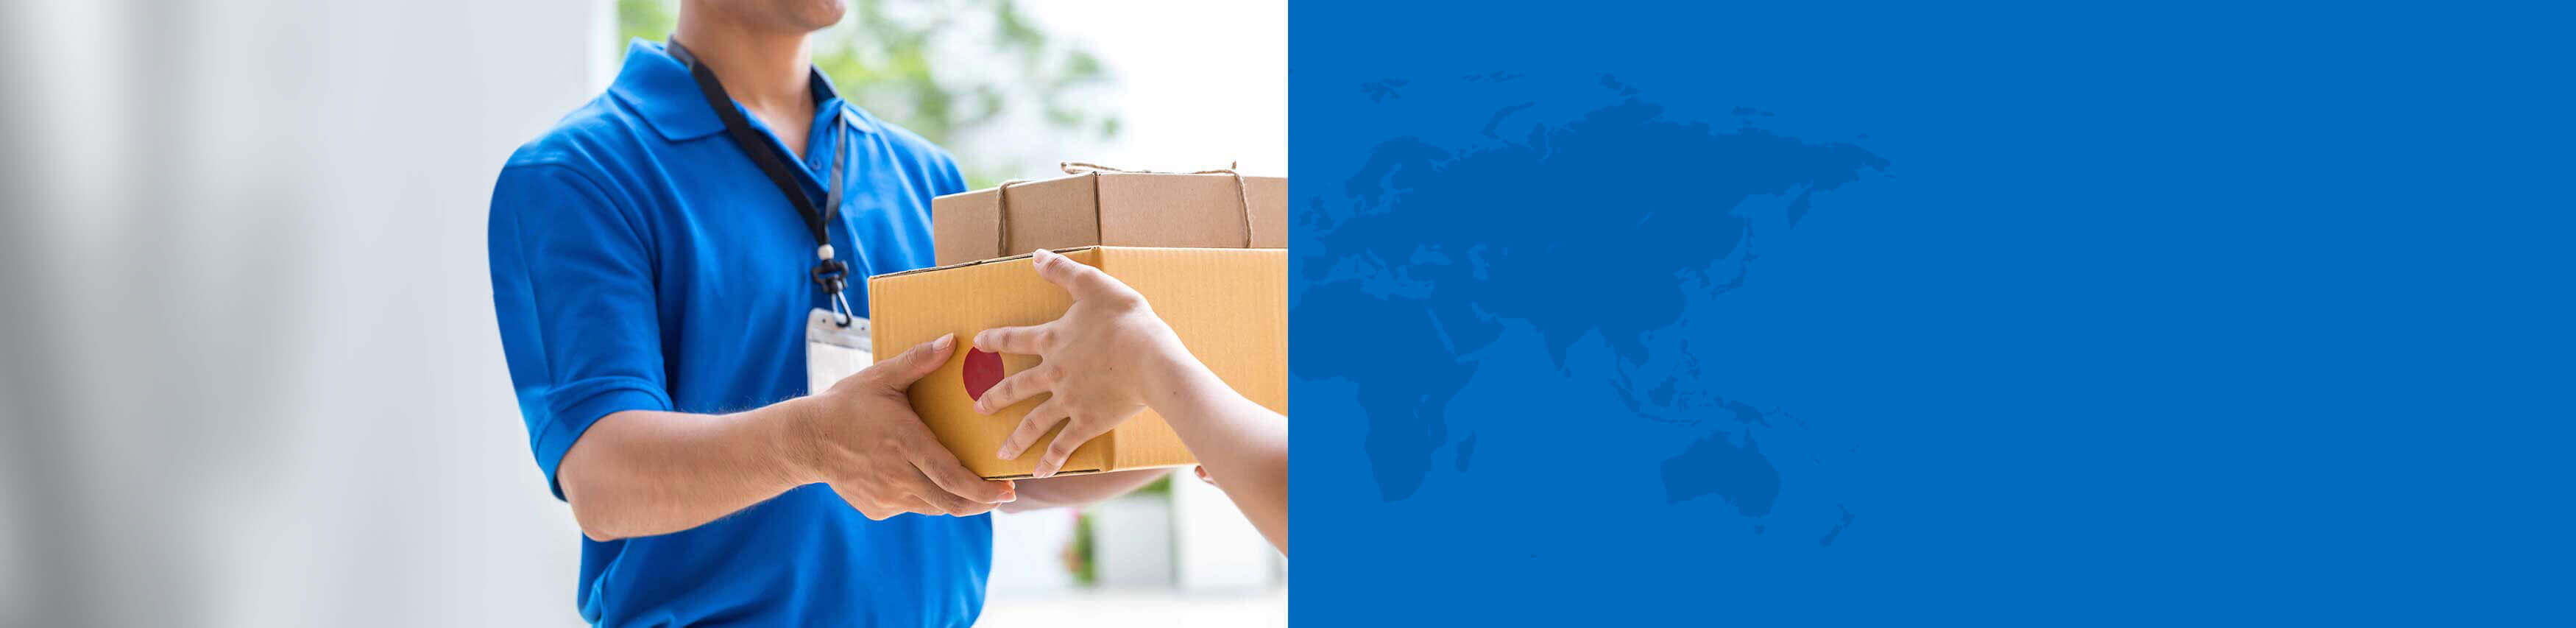 parcel forwarding background